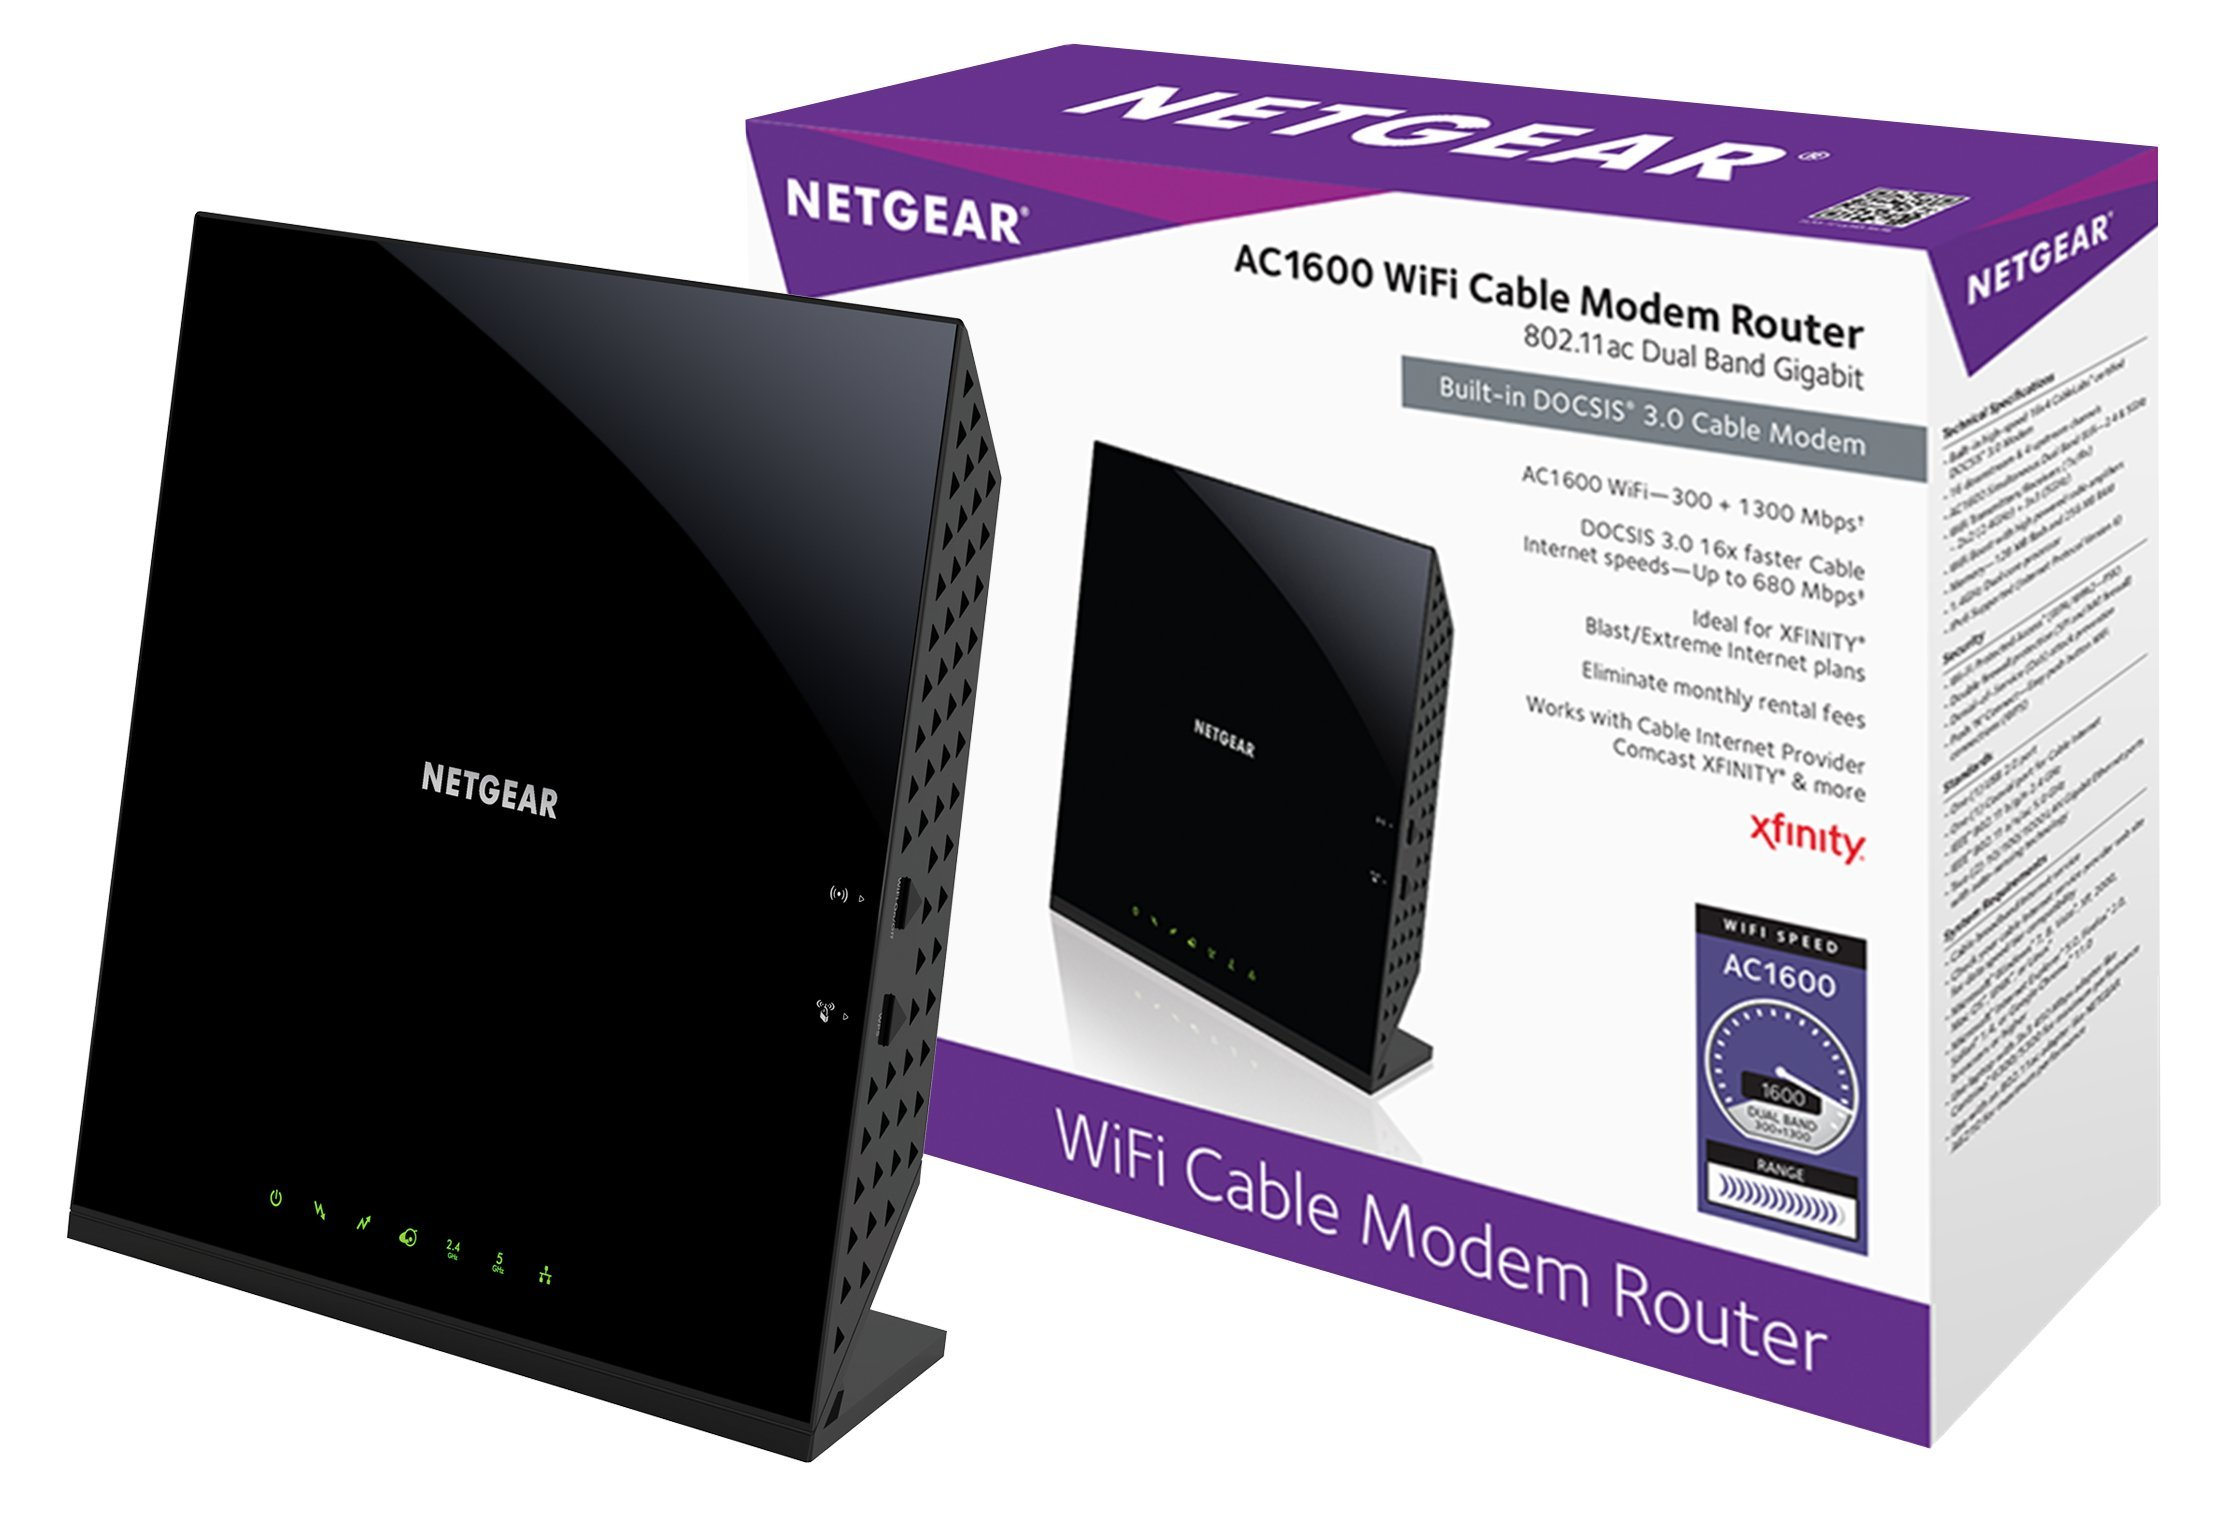 NETGEAR AC1600 (16x4) WiFi Cable Modem Router (C6250) DOCSIS 3.0 Certified for Xfinity Comcast, Time Warner Cable, Cox, & more by NETGEAR